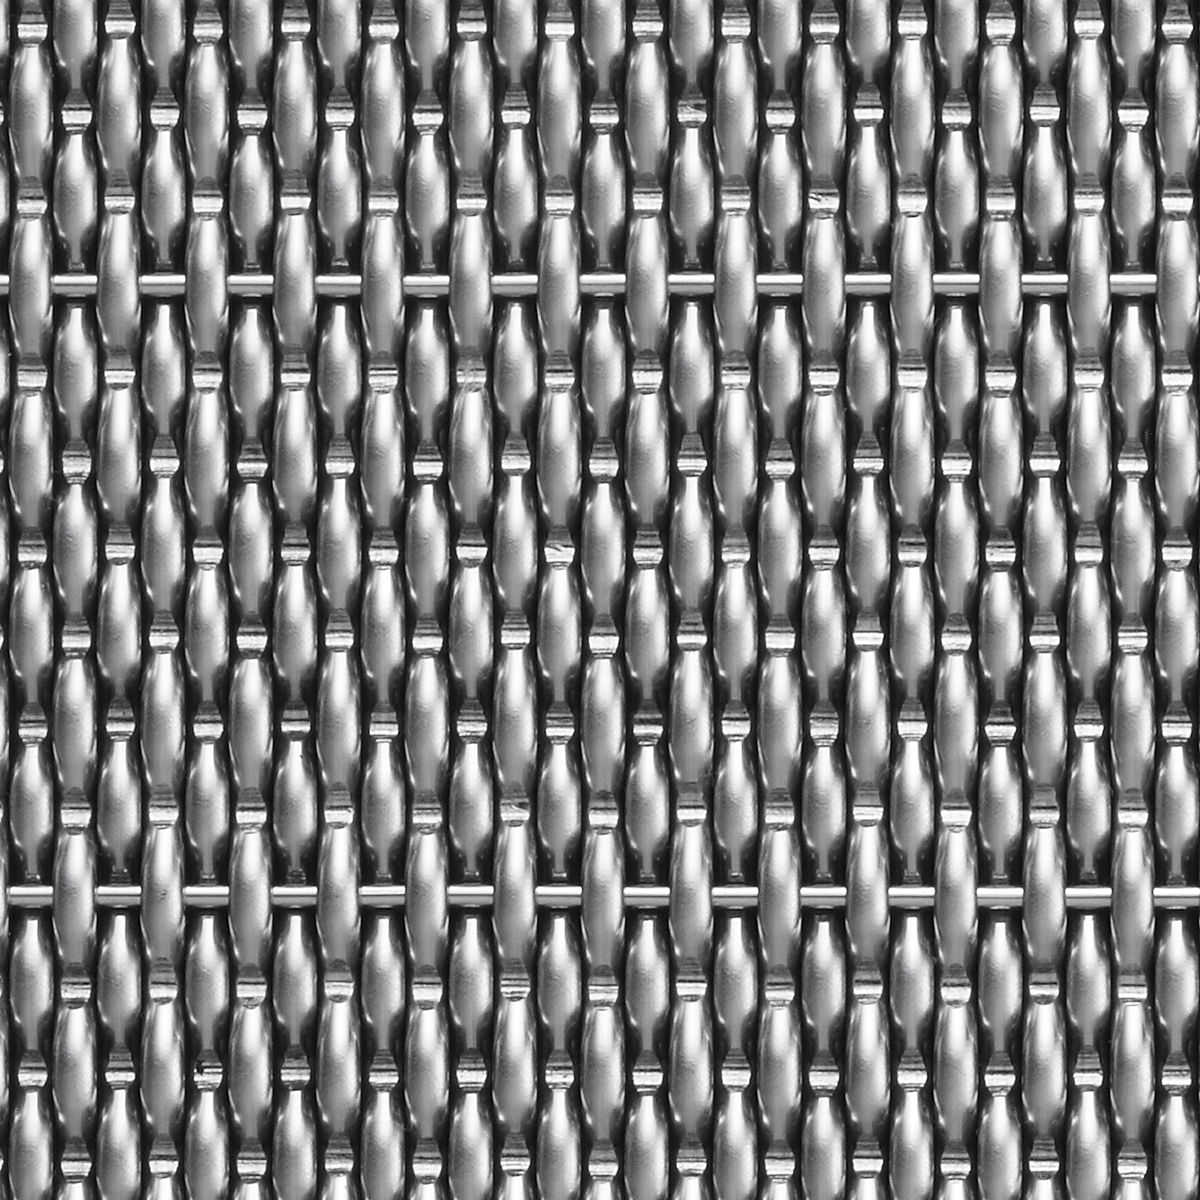 Partition Wall Woven Wire Fabric Stainless Steel Brass Bronze